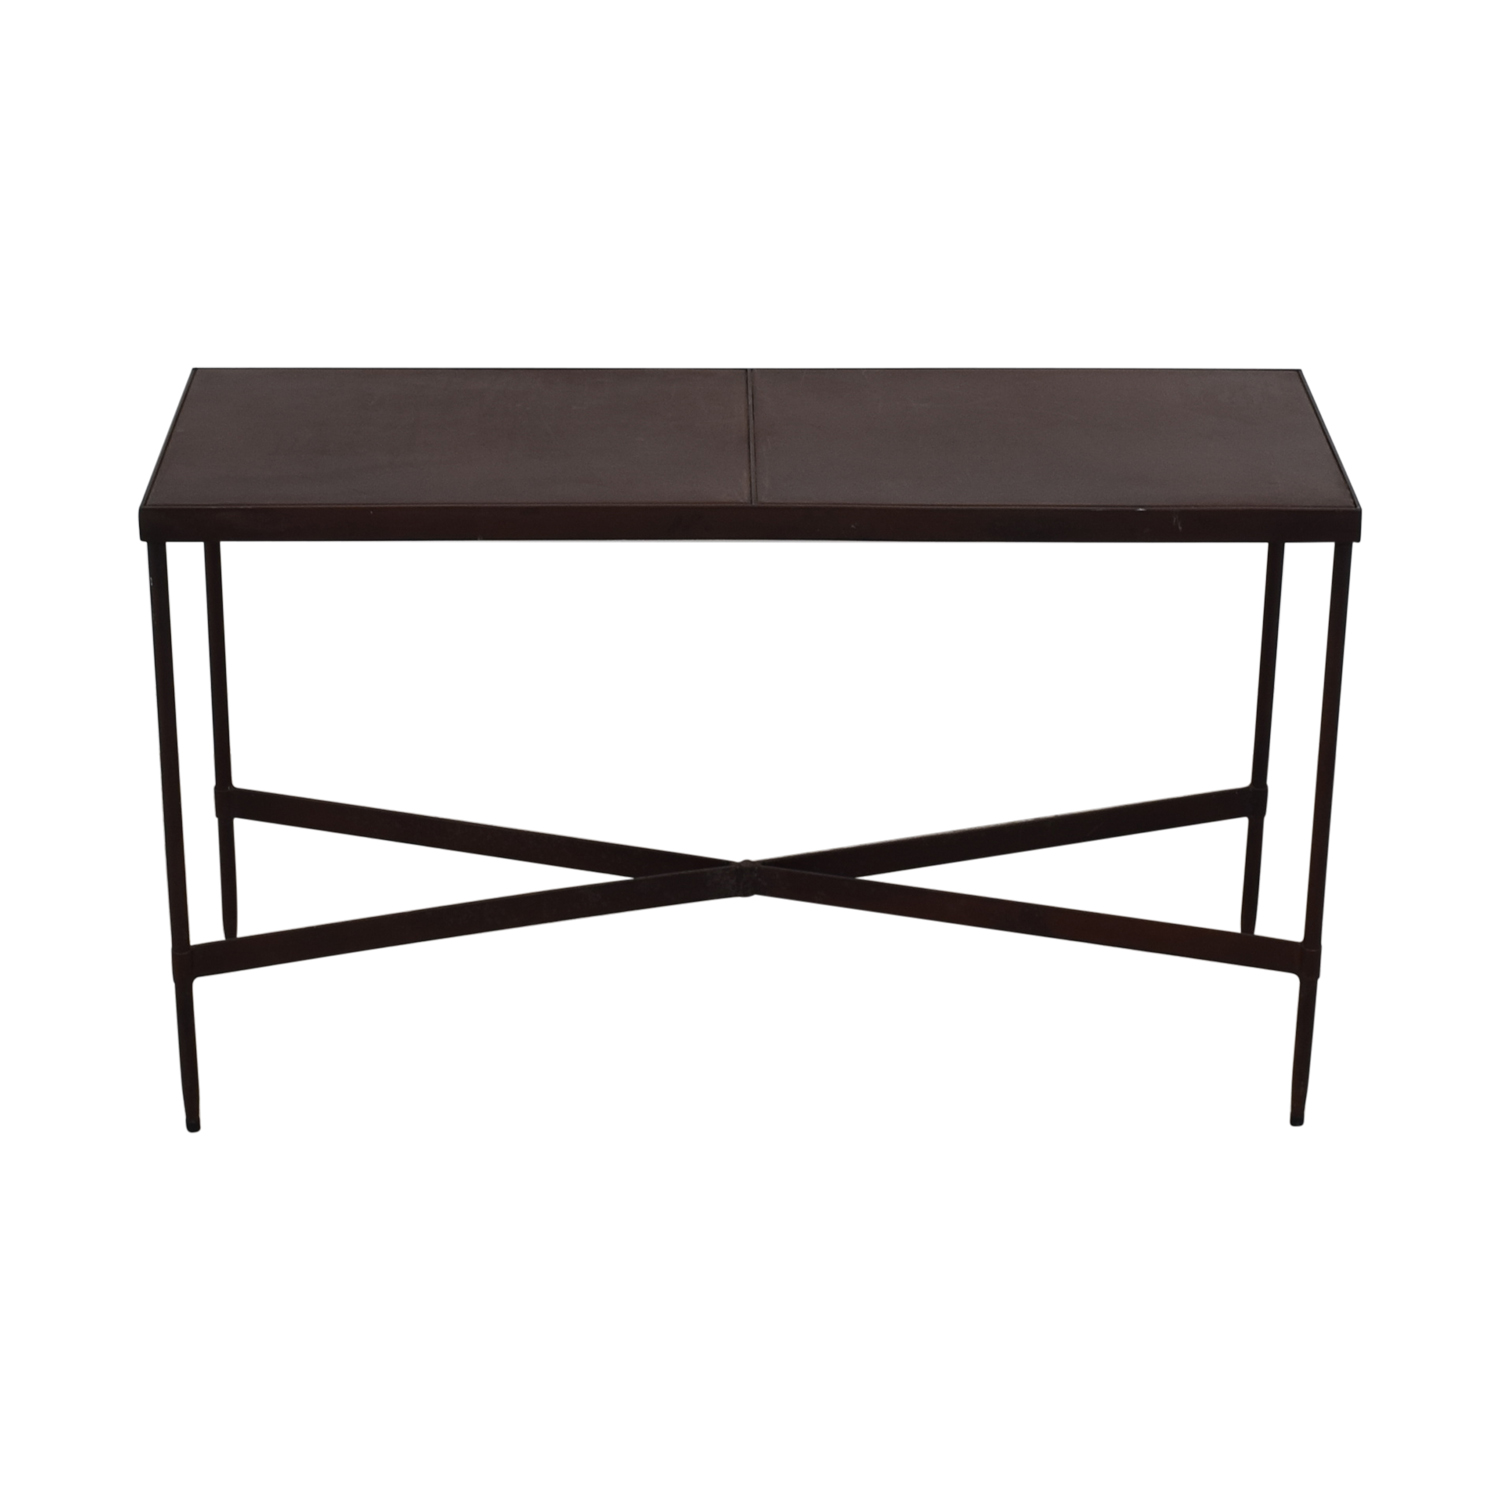 ABC Carpet & Home ABC Carpet & Home Wrought Iron Side Table Accent Tables